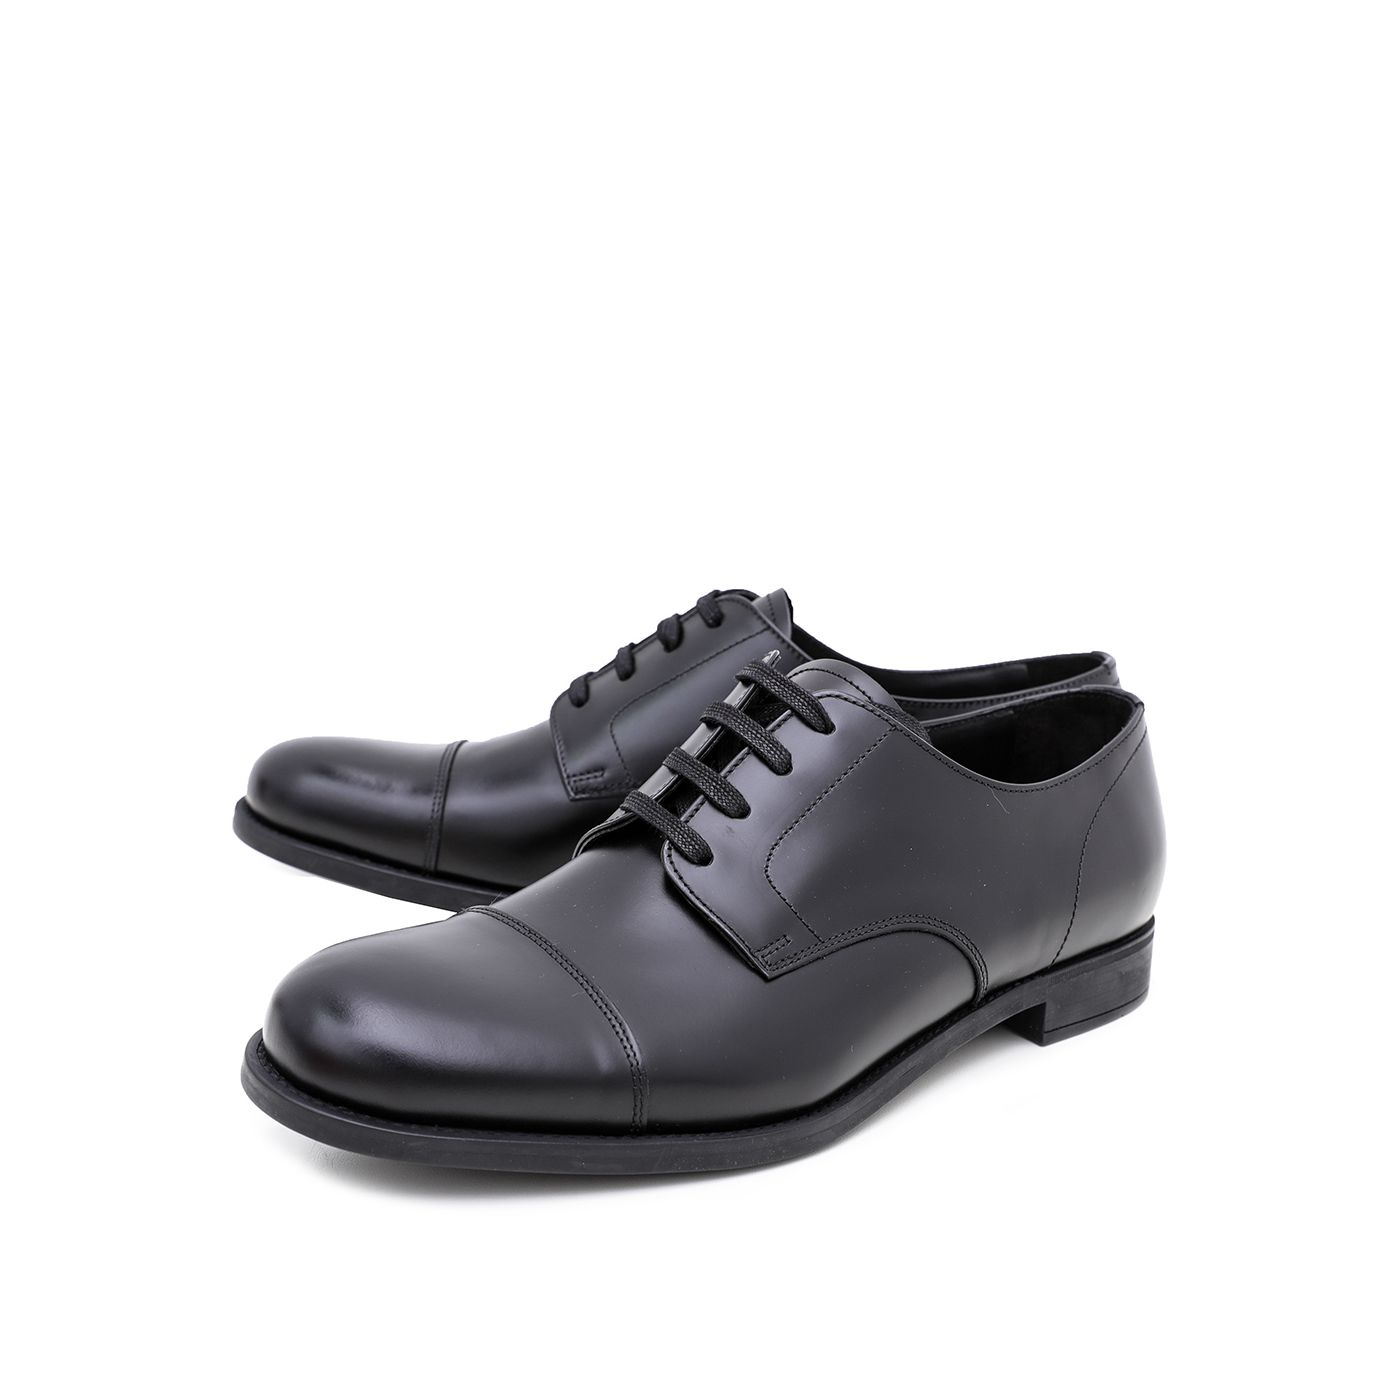 Prada Black Derby Formal Shoes 43